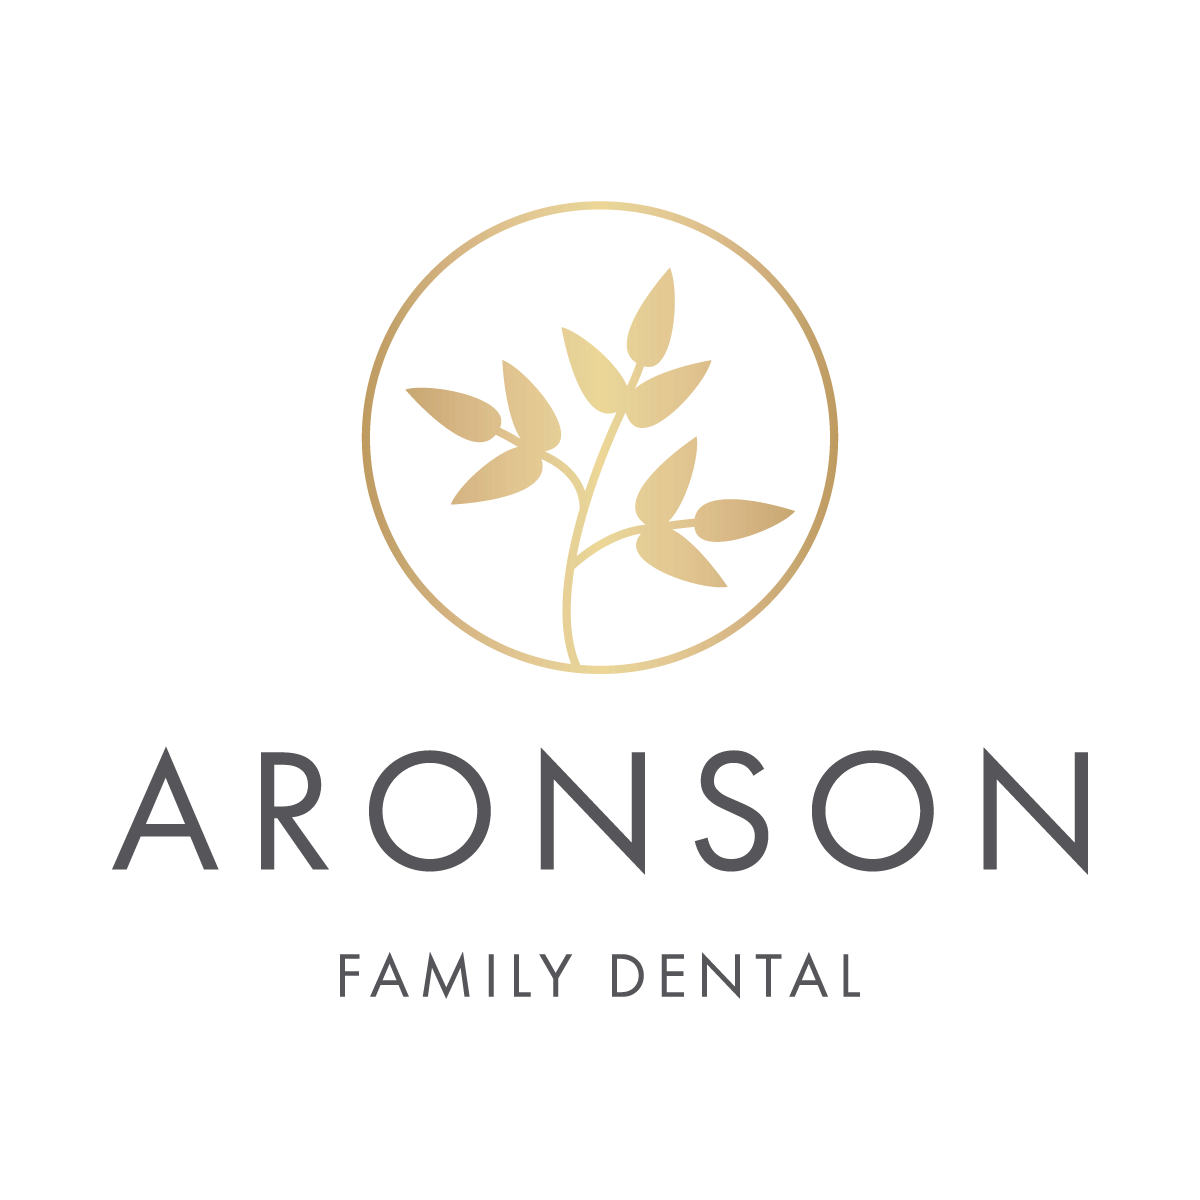 Aronson Family Dental